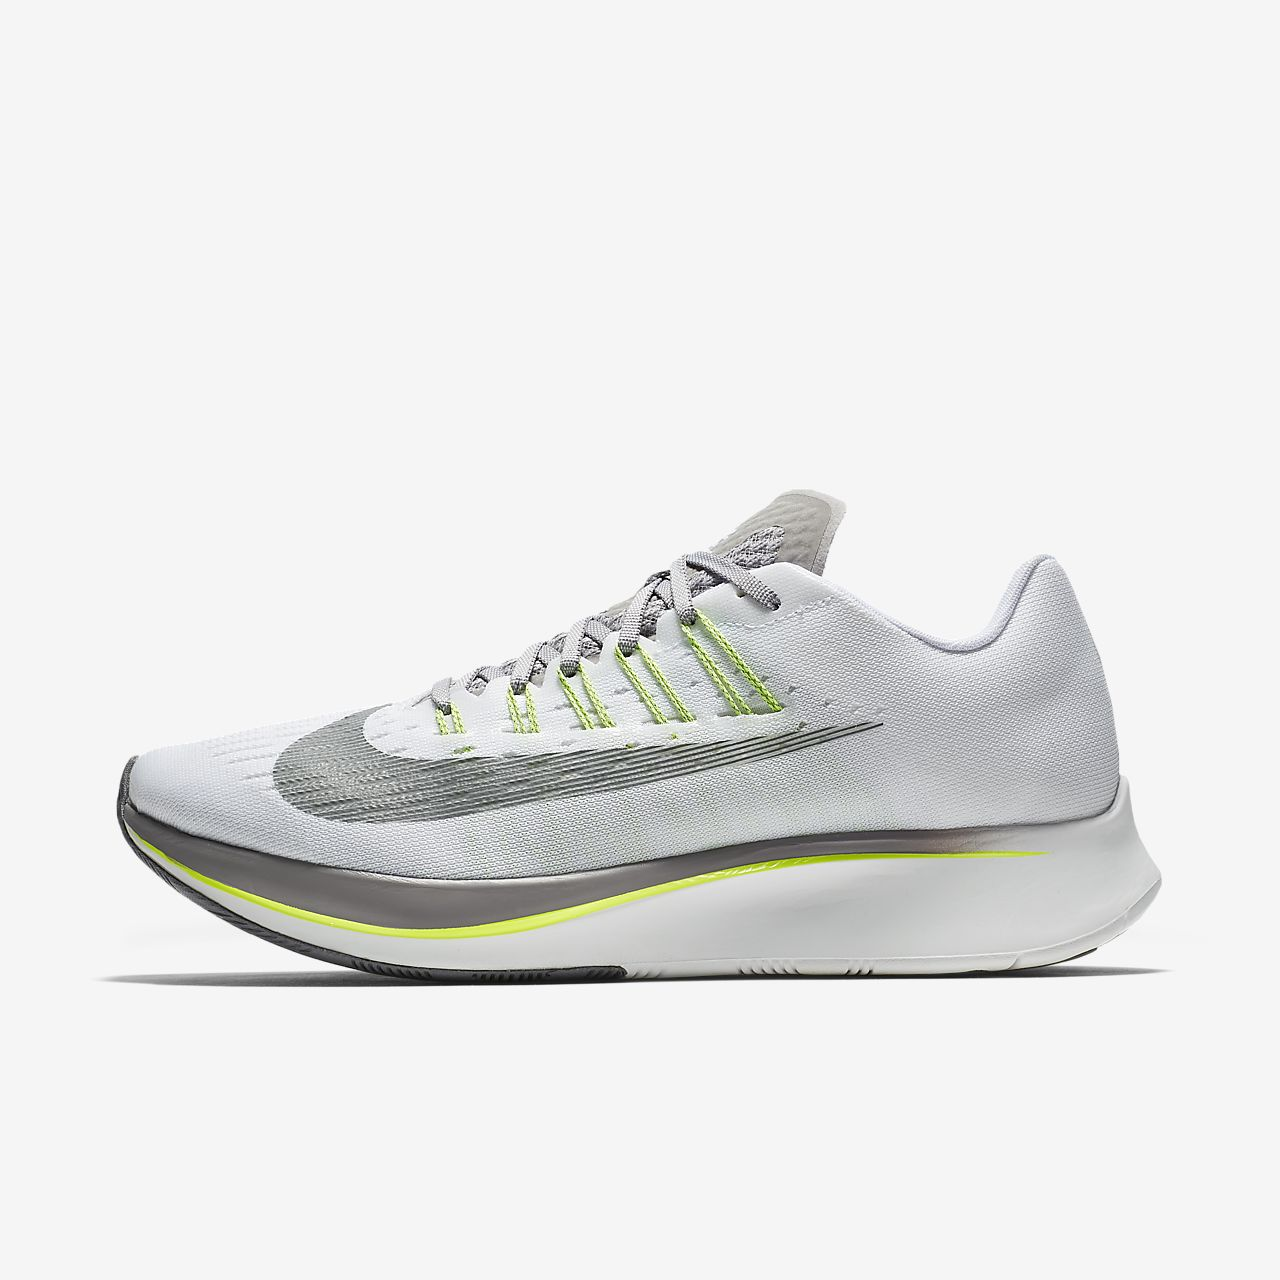 8812e8bdabc5 Nike Zoom Fly Men s Running Shoe. Nike.com